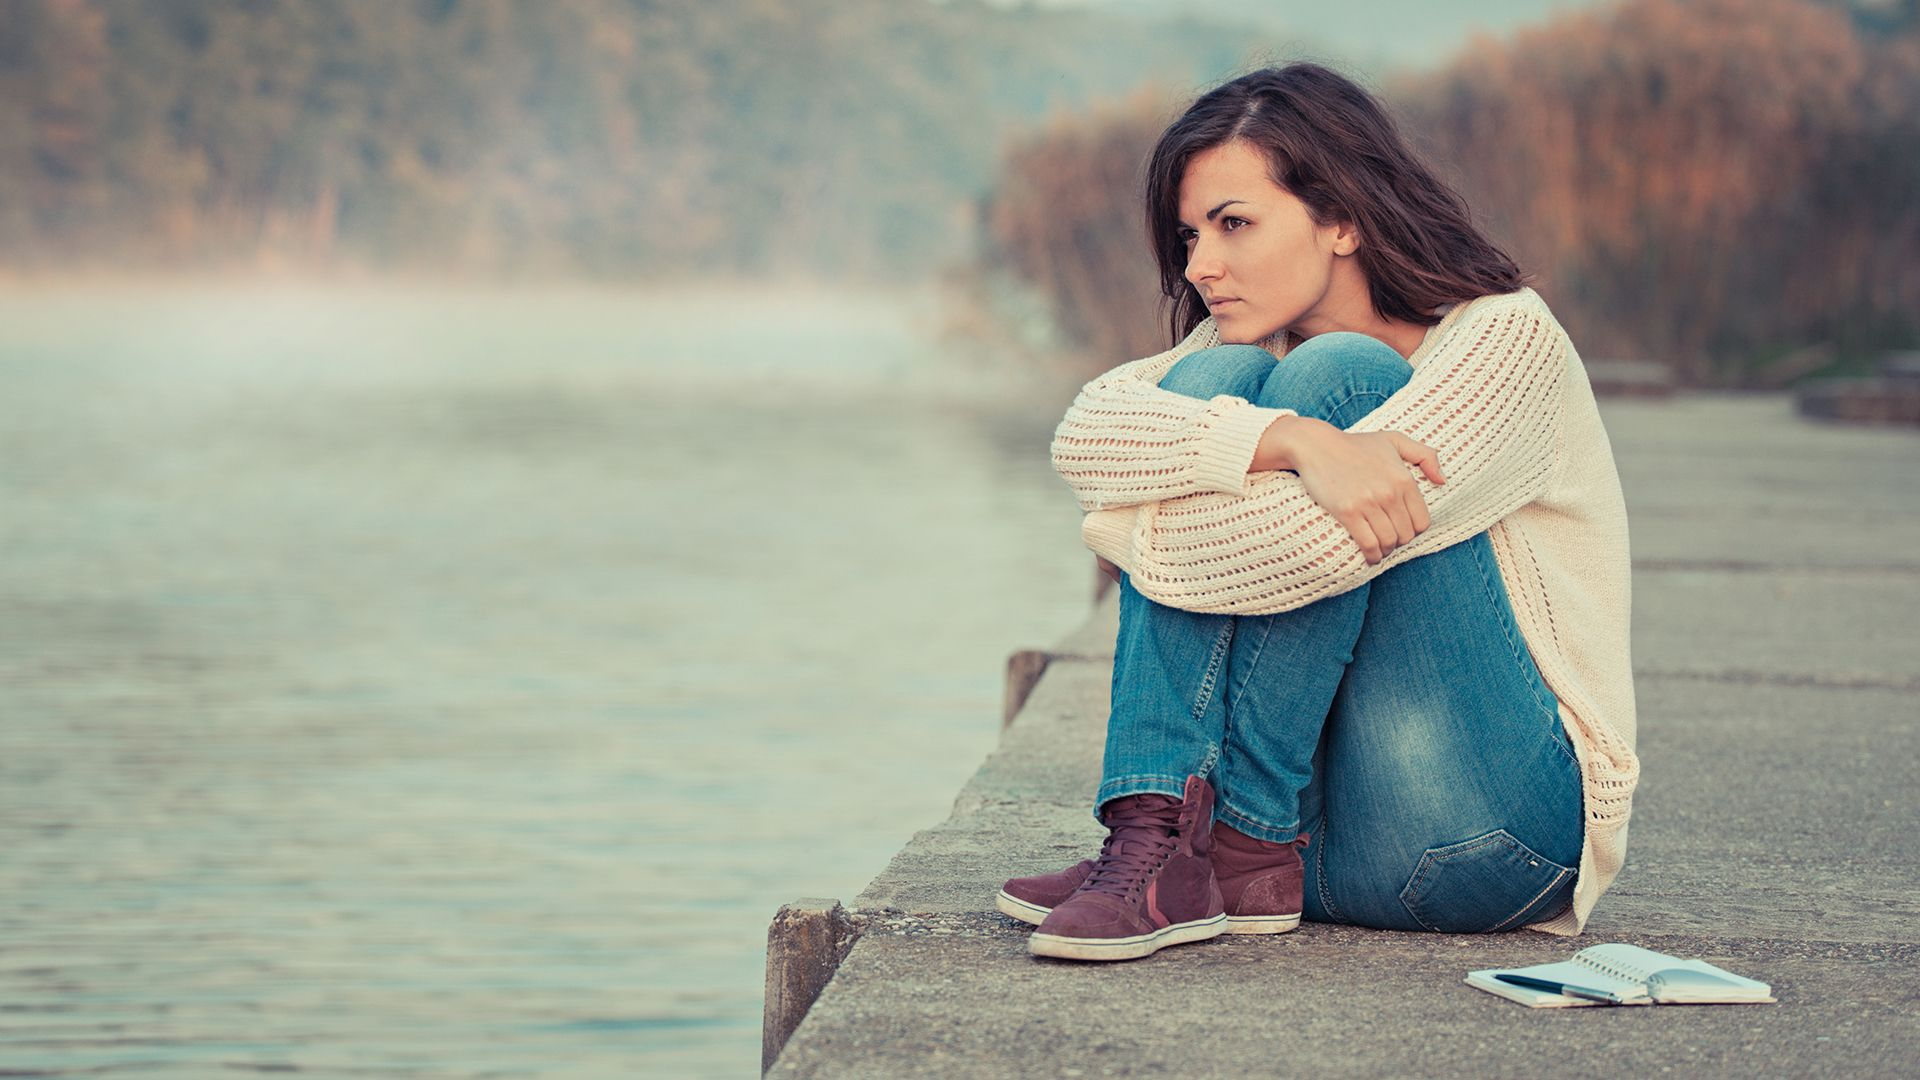 Introverts are doing it right: Why solitude is good for your health